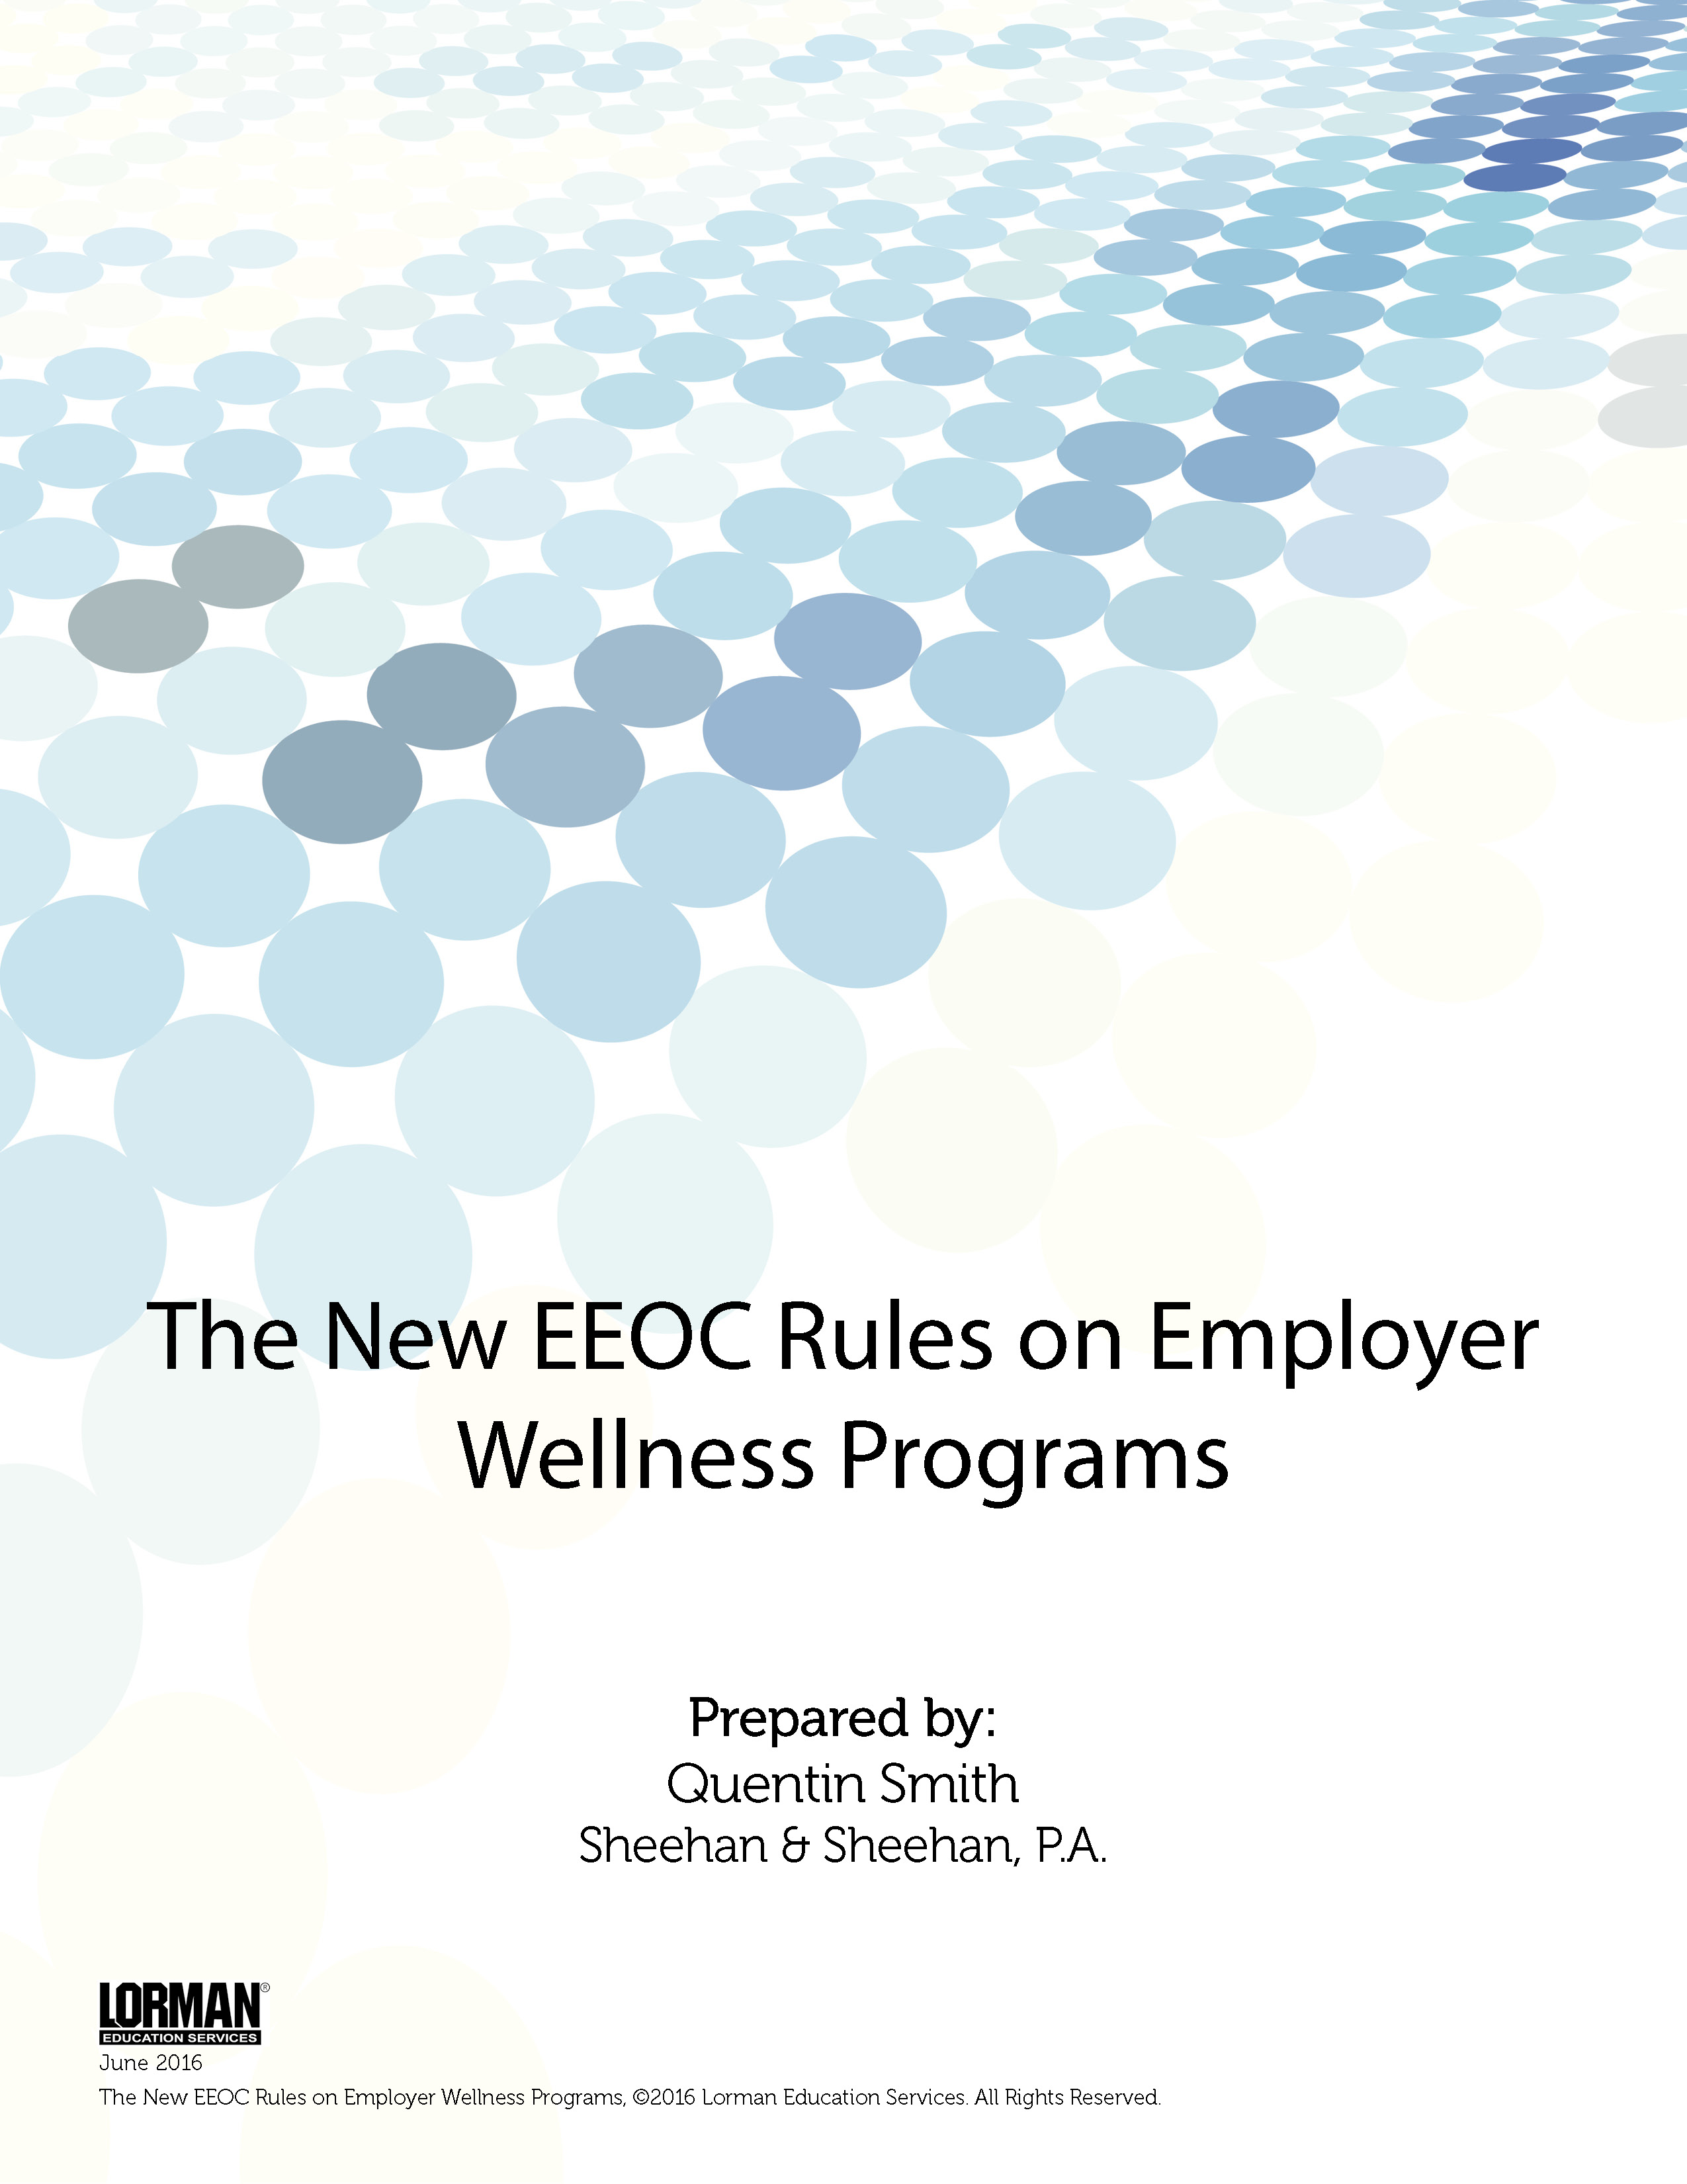 The New EEOC Rules on Employer Wellness Programs